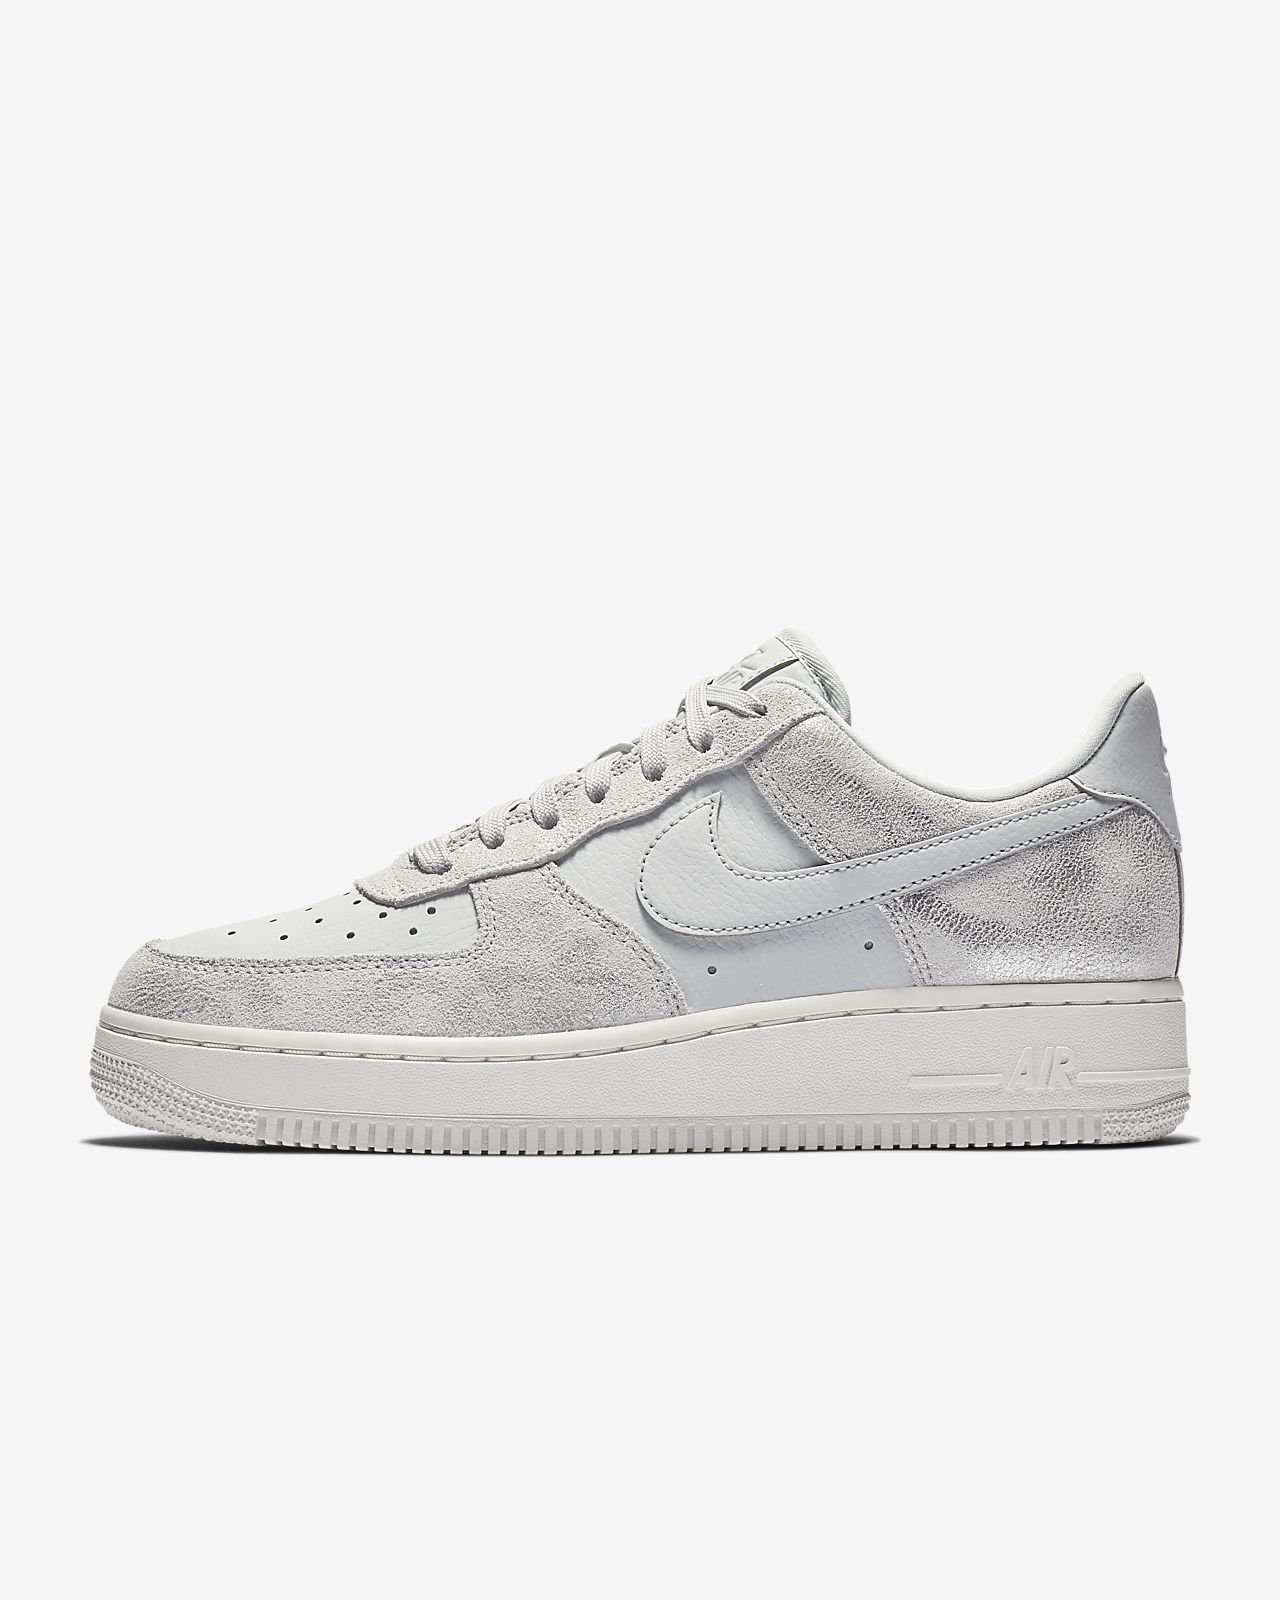 Nike Air Force 1 07 Premium Women's Shoe